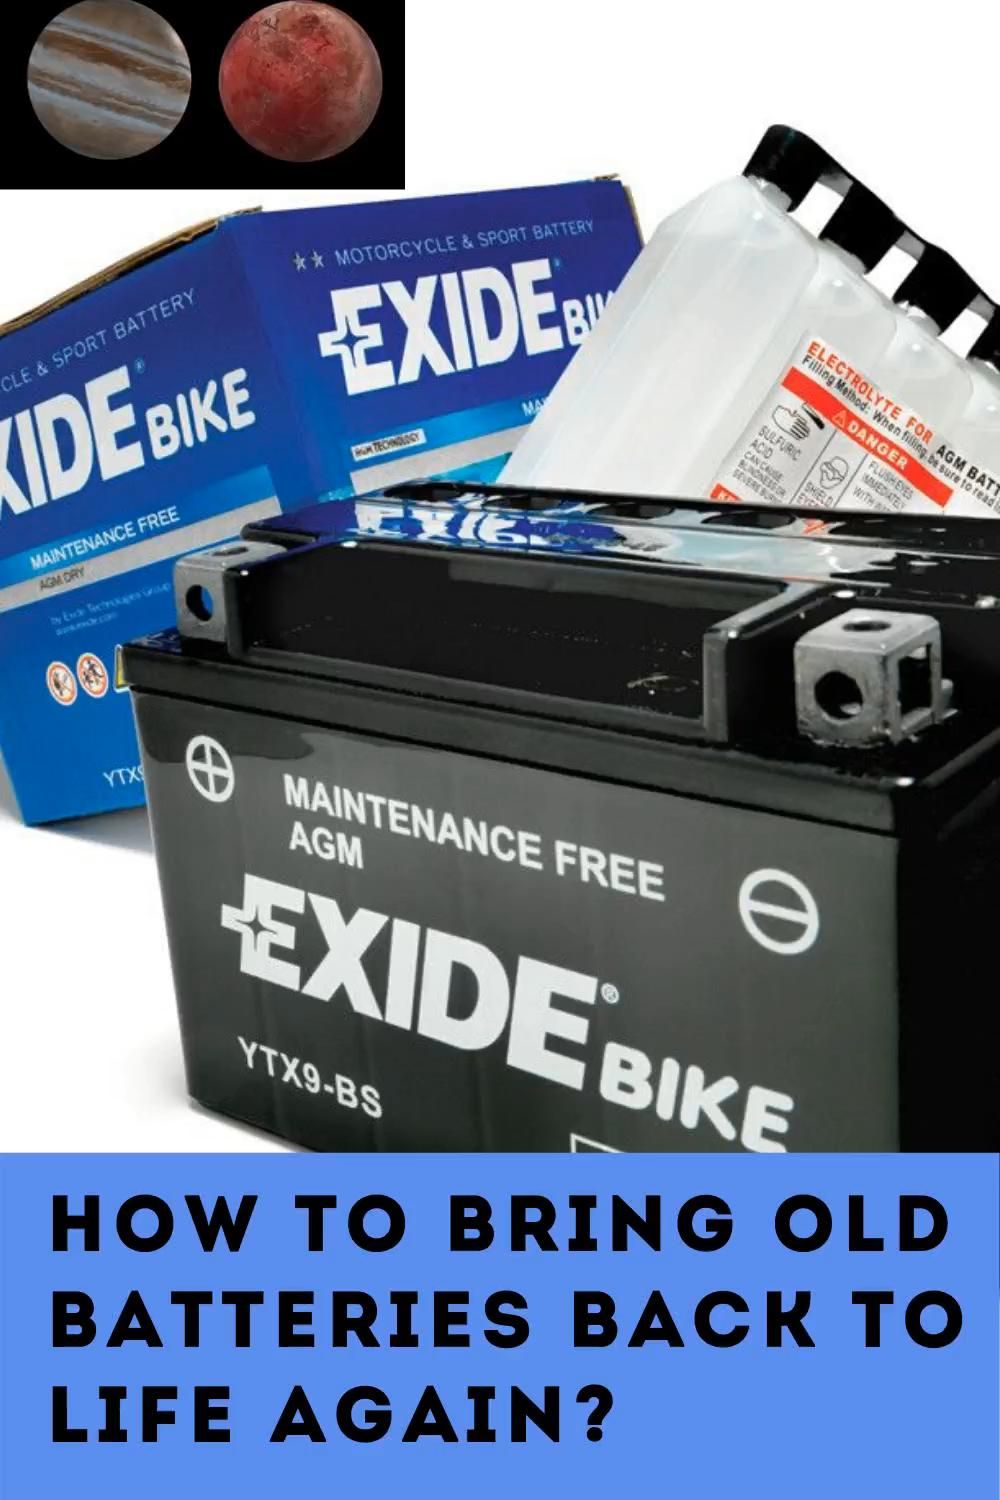 How To Restore A Battery Reconditioning Nicad Batteries Battery Reconditioning Business Fix It Video Cordless Drill Batteries Battery Repair Dead Car Battery